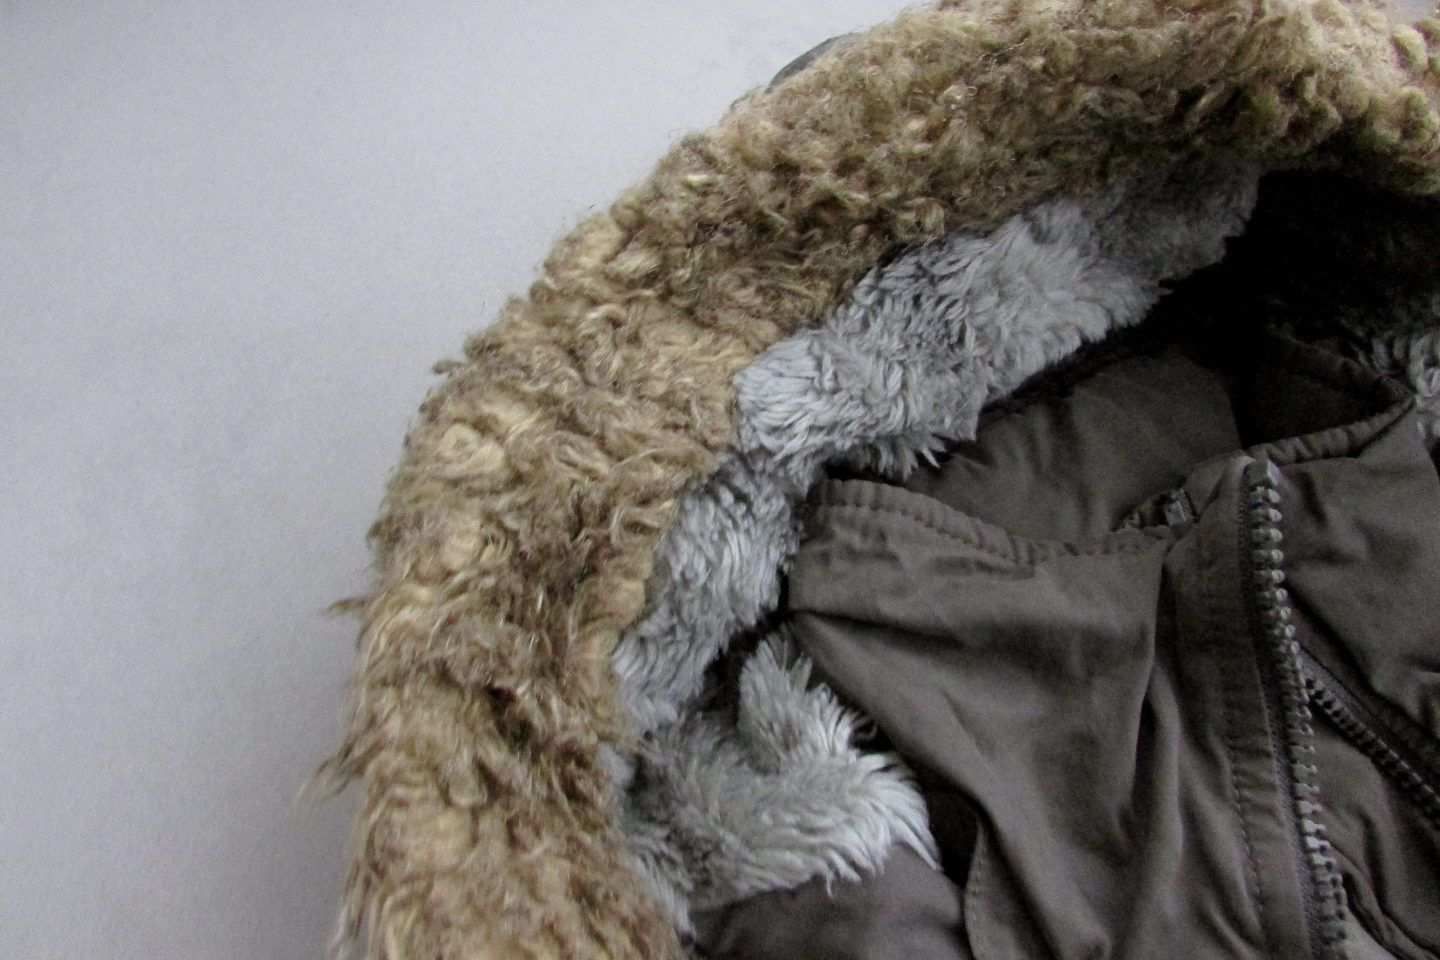 How to Fix Matted Fur Trim on a Winter Coat Damaged by